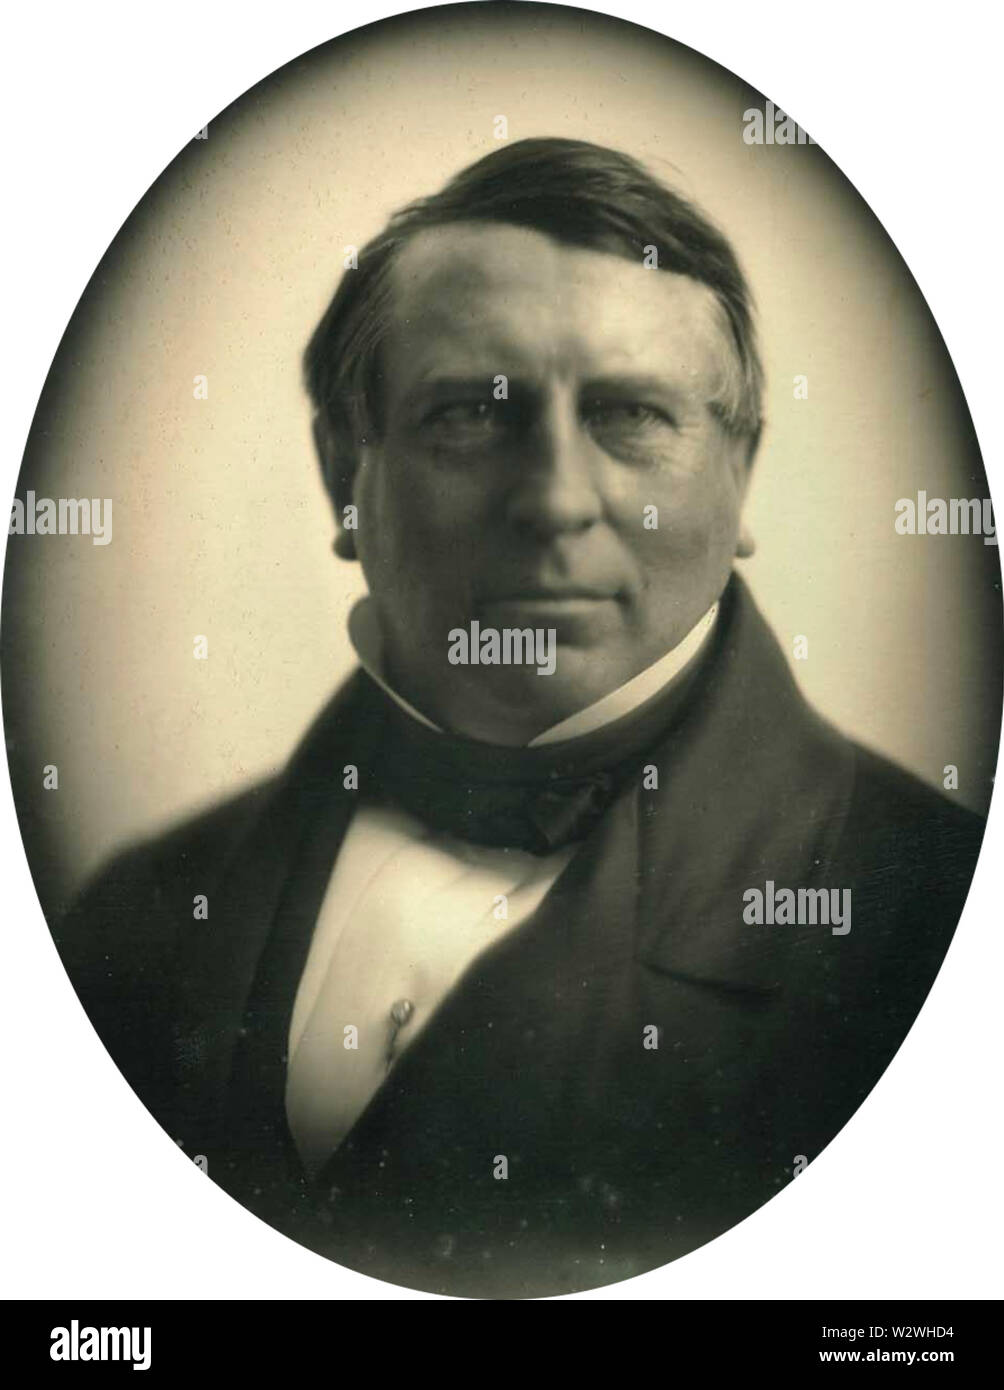 James Mayer de Rothschild by Southworth & Hawes - Stock Image